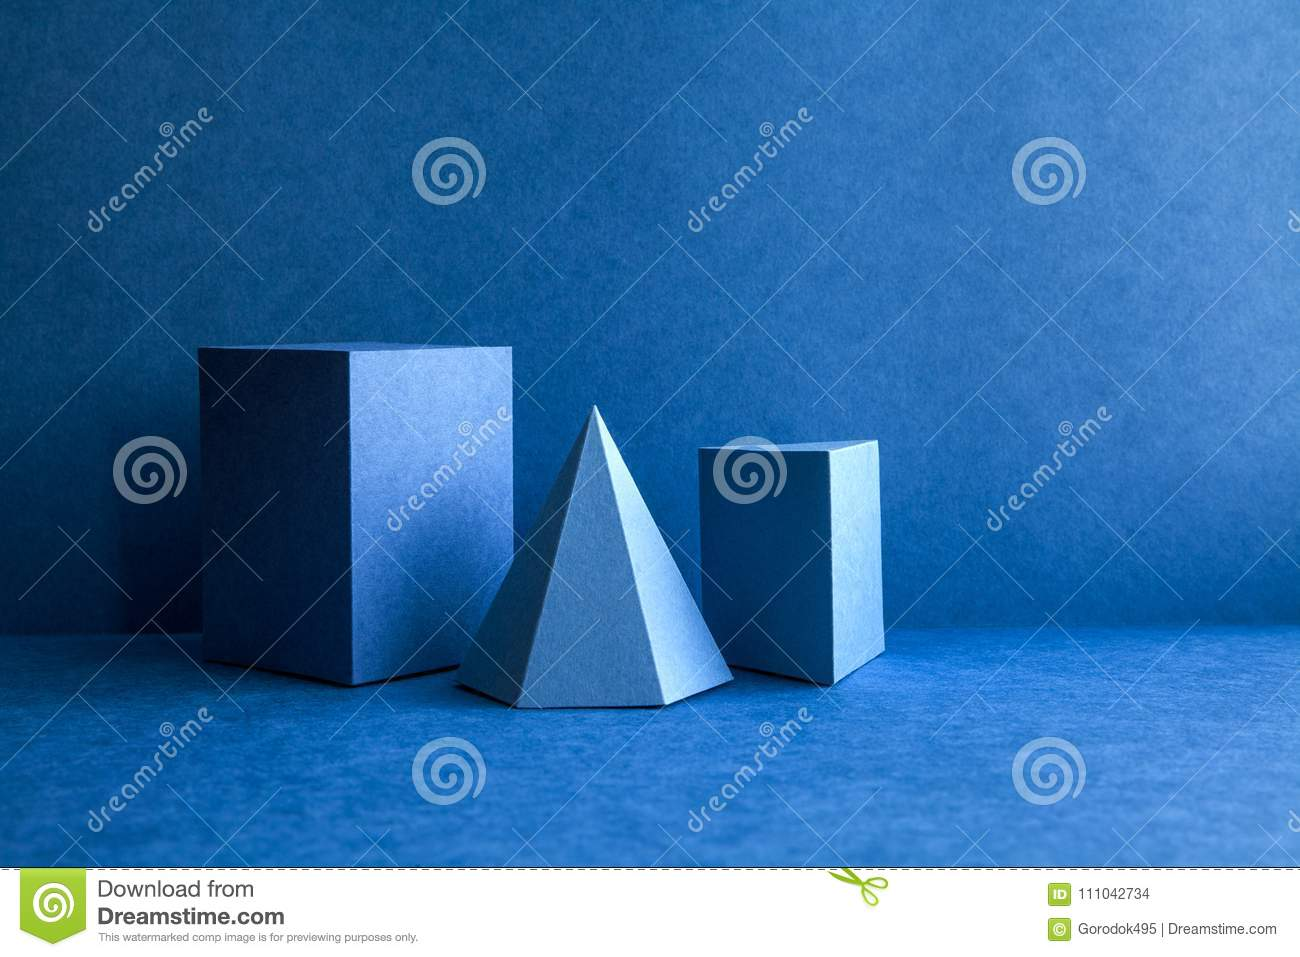 Geometrical figures still life composition. Three-dimensional prism pyramid tetrahedron rectangular cube objects on blue